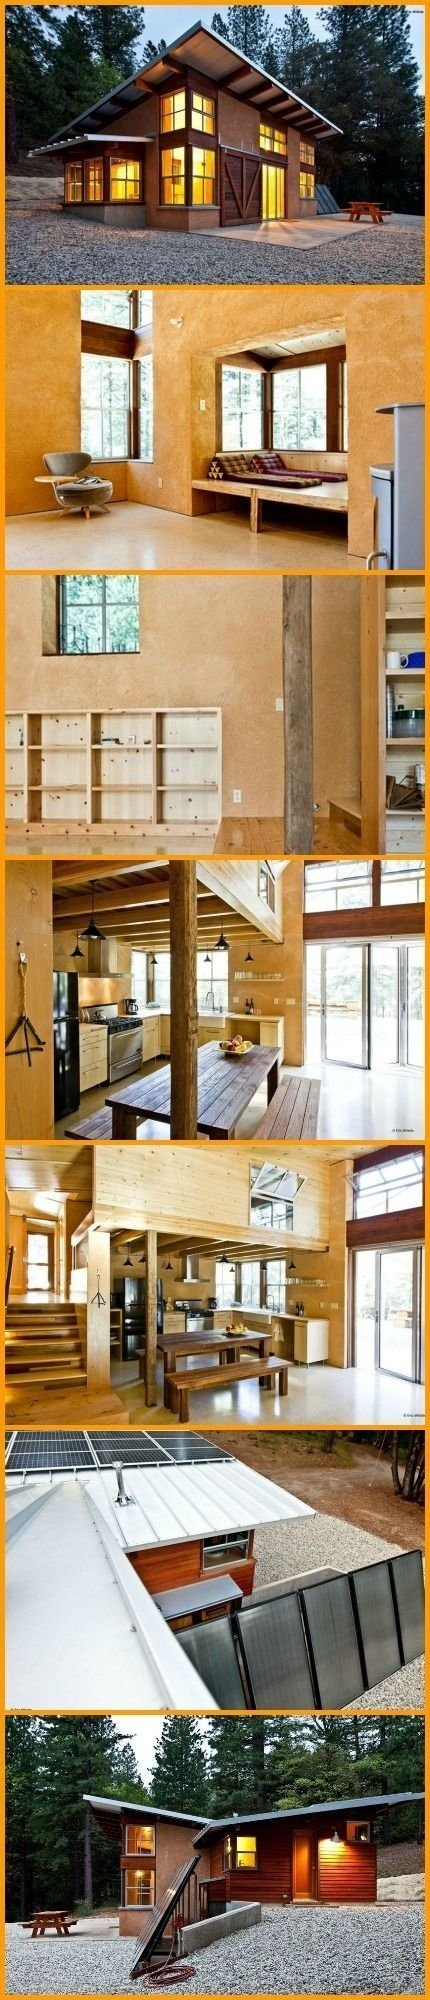 10 Most Recommended Off The Grid Living Ideas 1914 Best Off The Grid Living  Images On